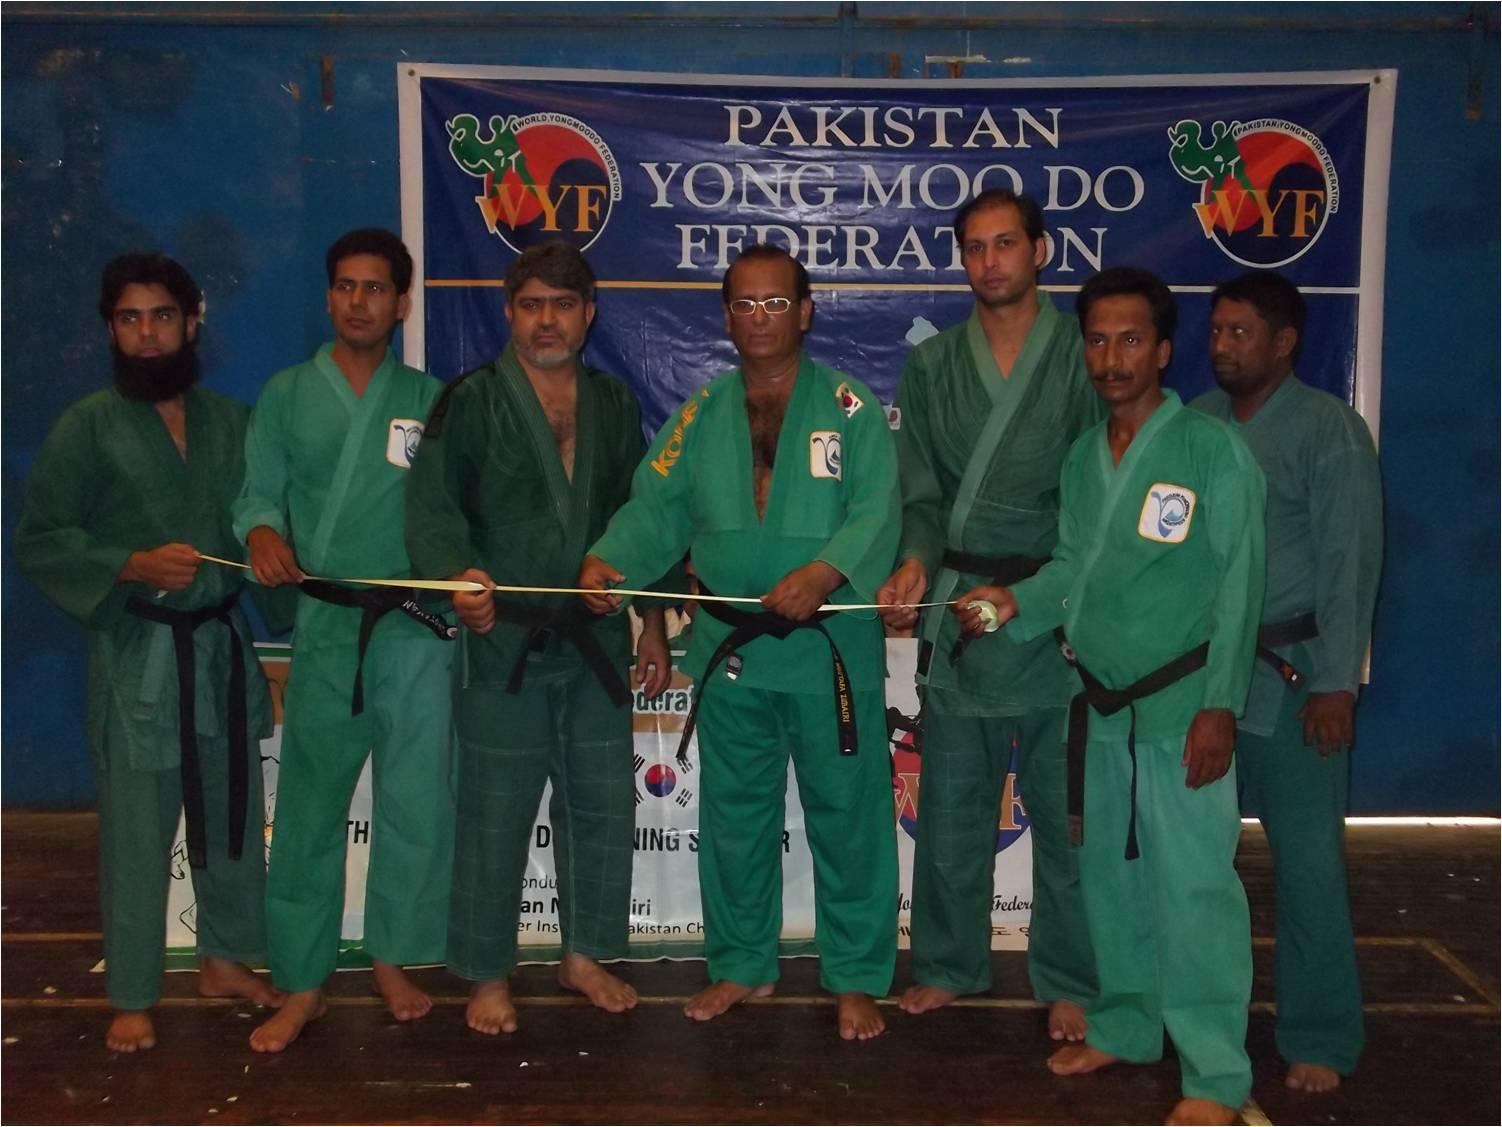 Yong Moo Do seminar at Pakistan Sports Board